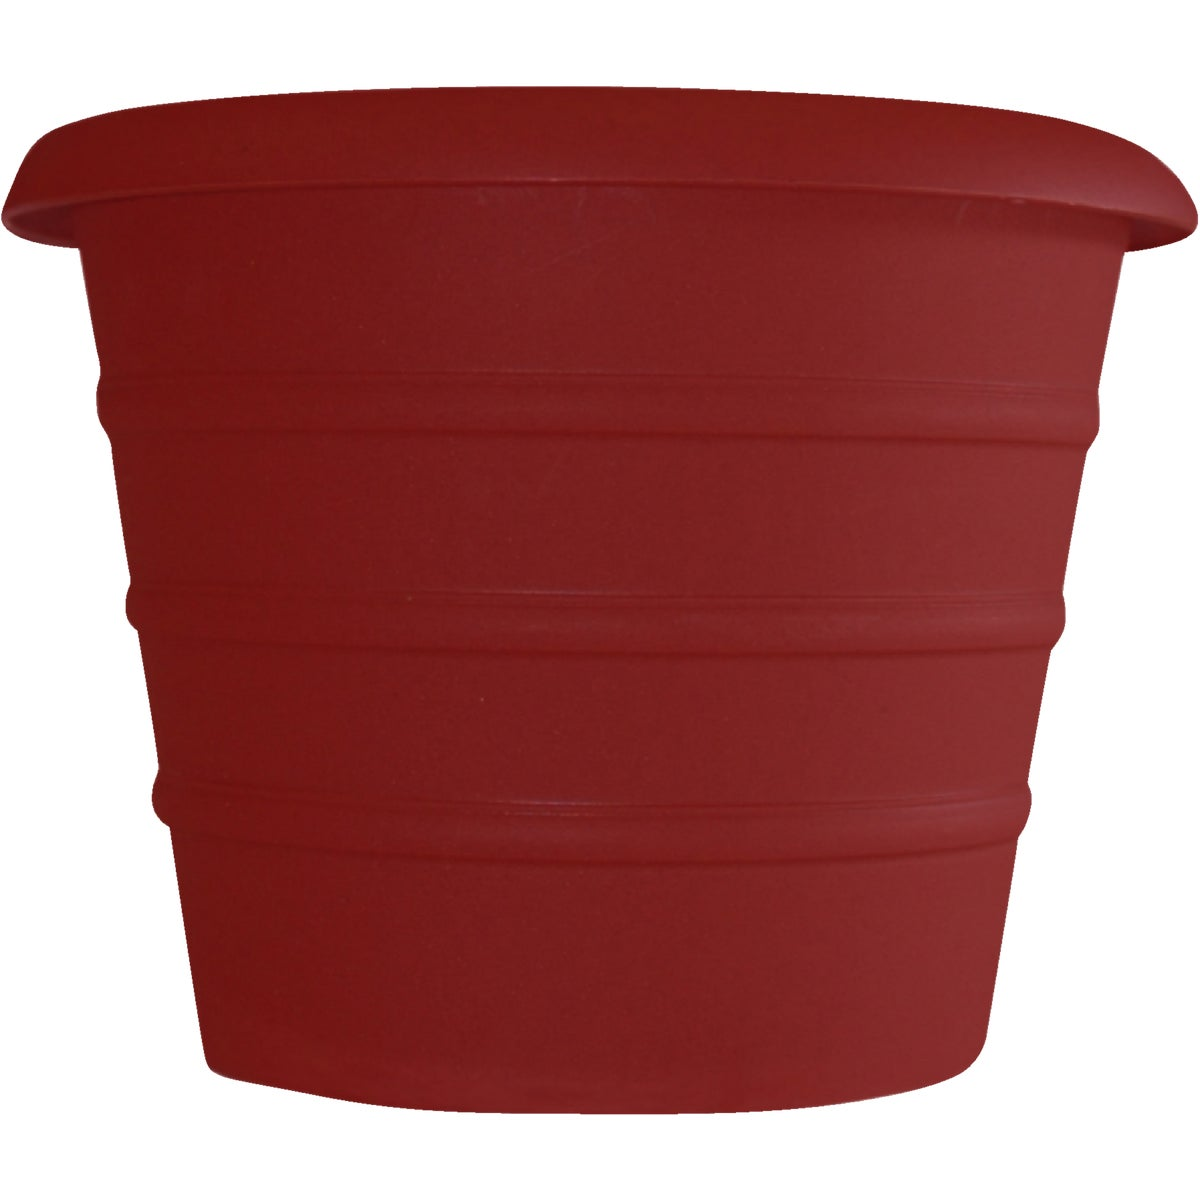 "12"" RED SELF WATER POT - MSA12001F85 by Myers Industries Inc"